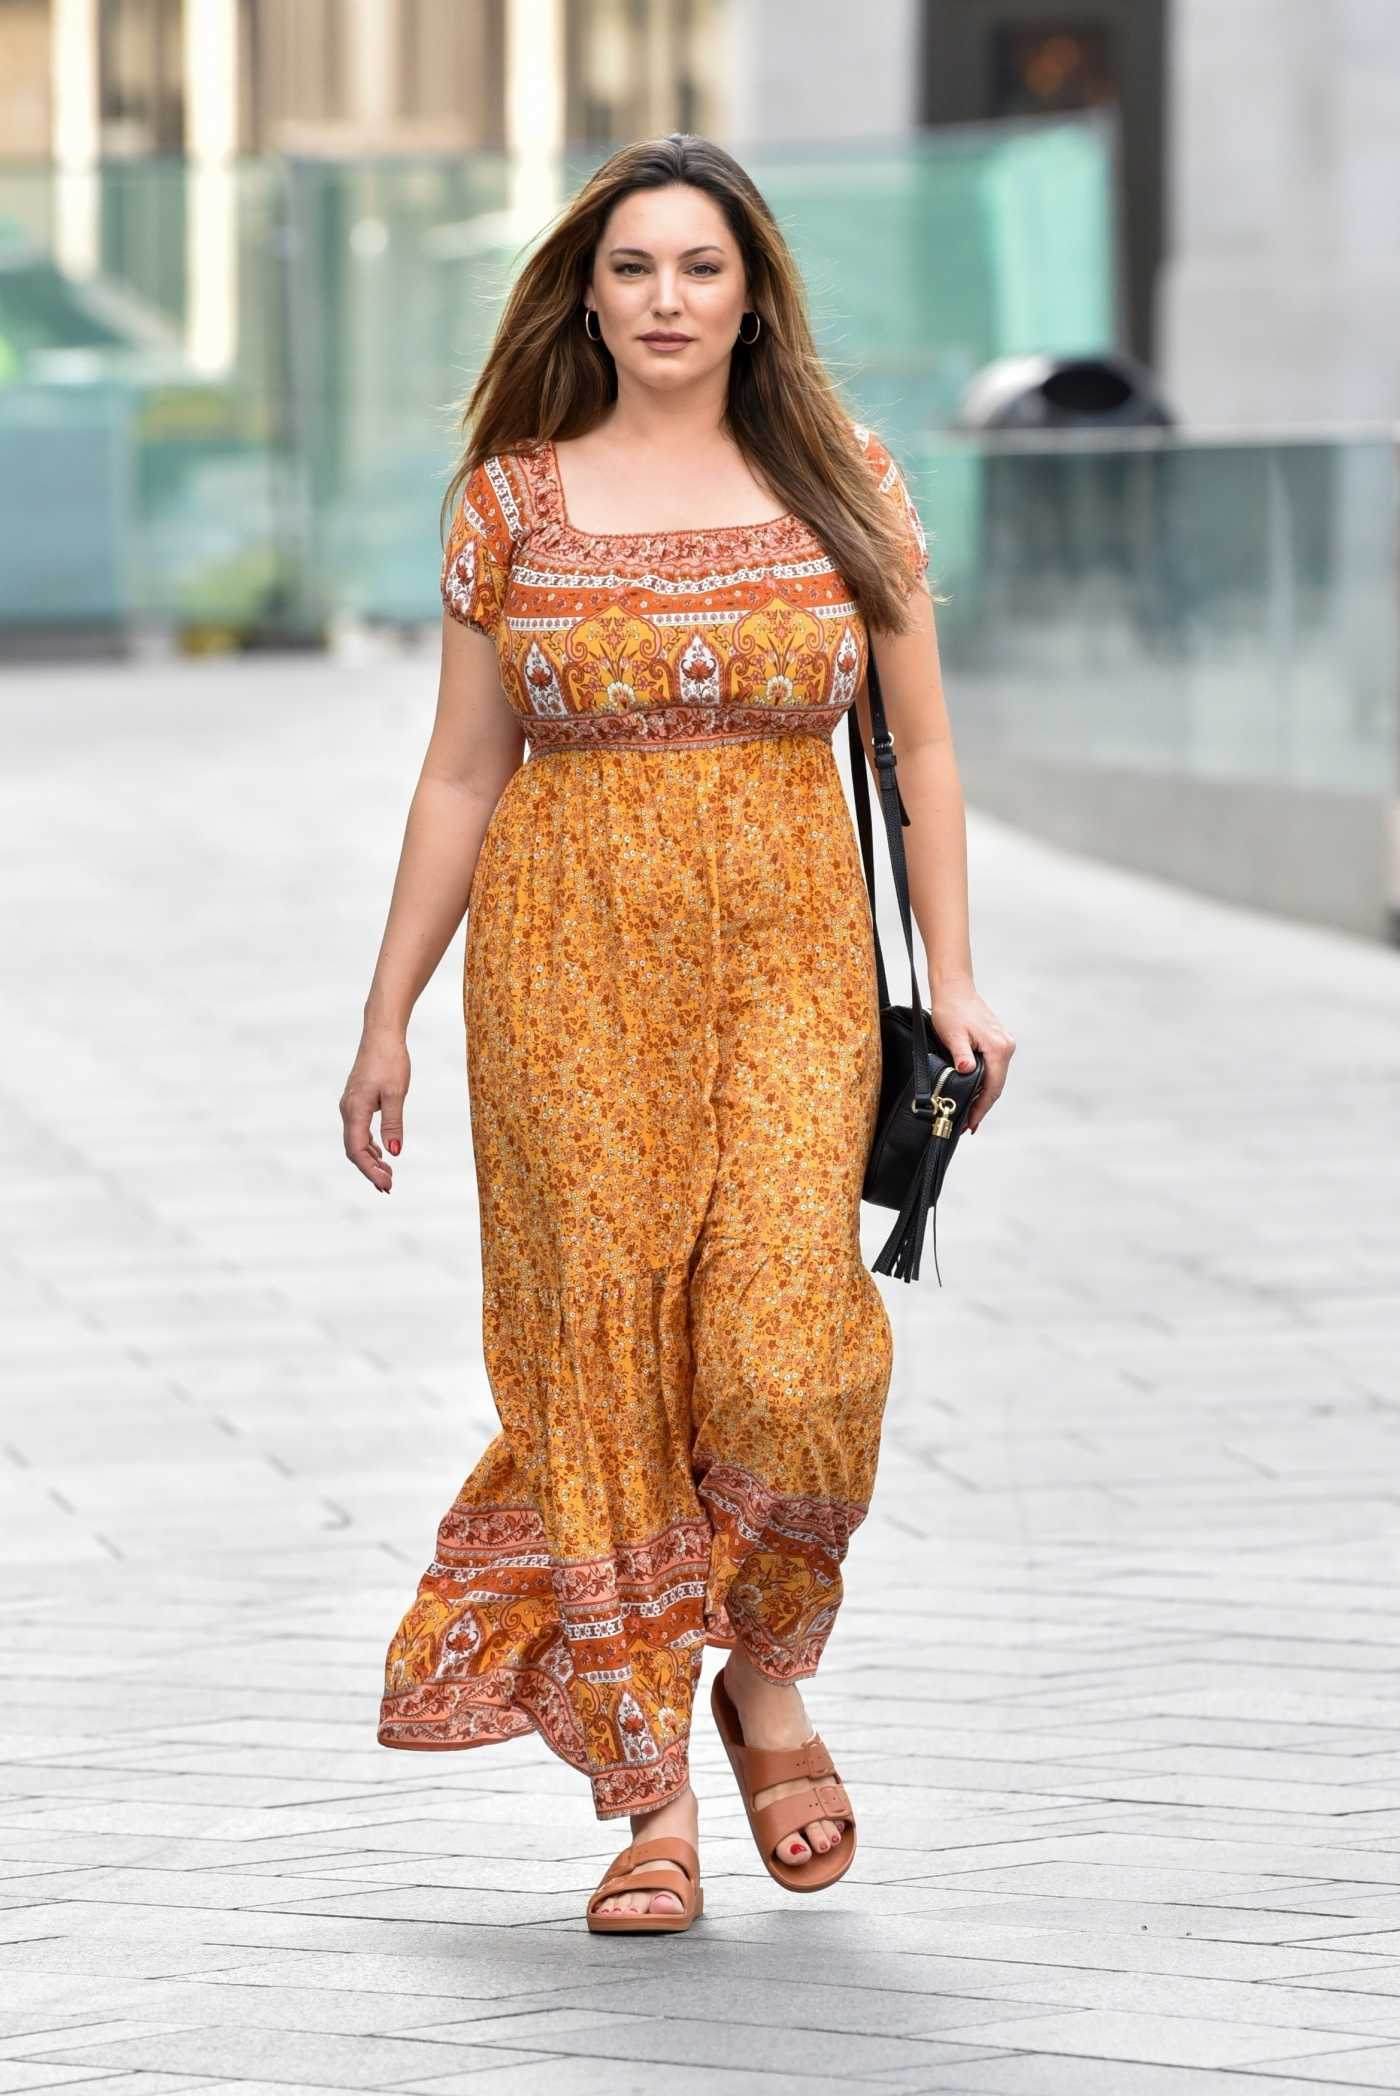 Kelly Brook in a Yellow Floral Dress Arrives at the Global Radio Studios in London 09/15/2020